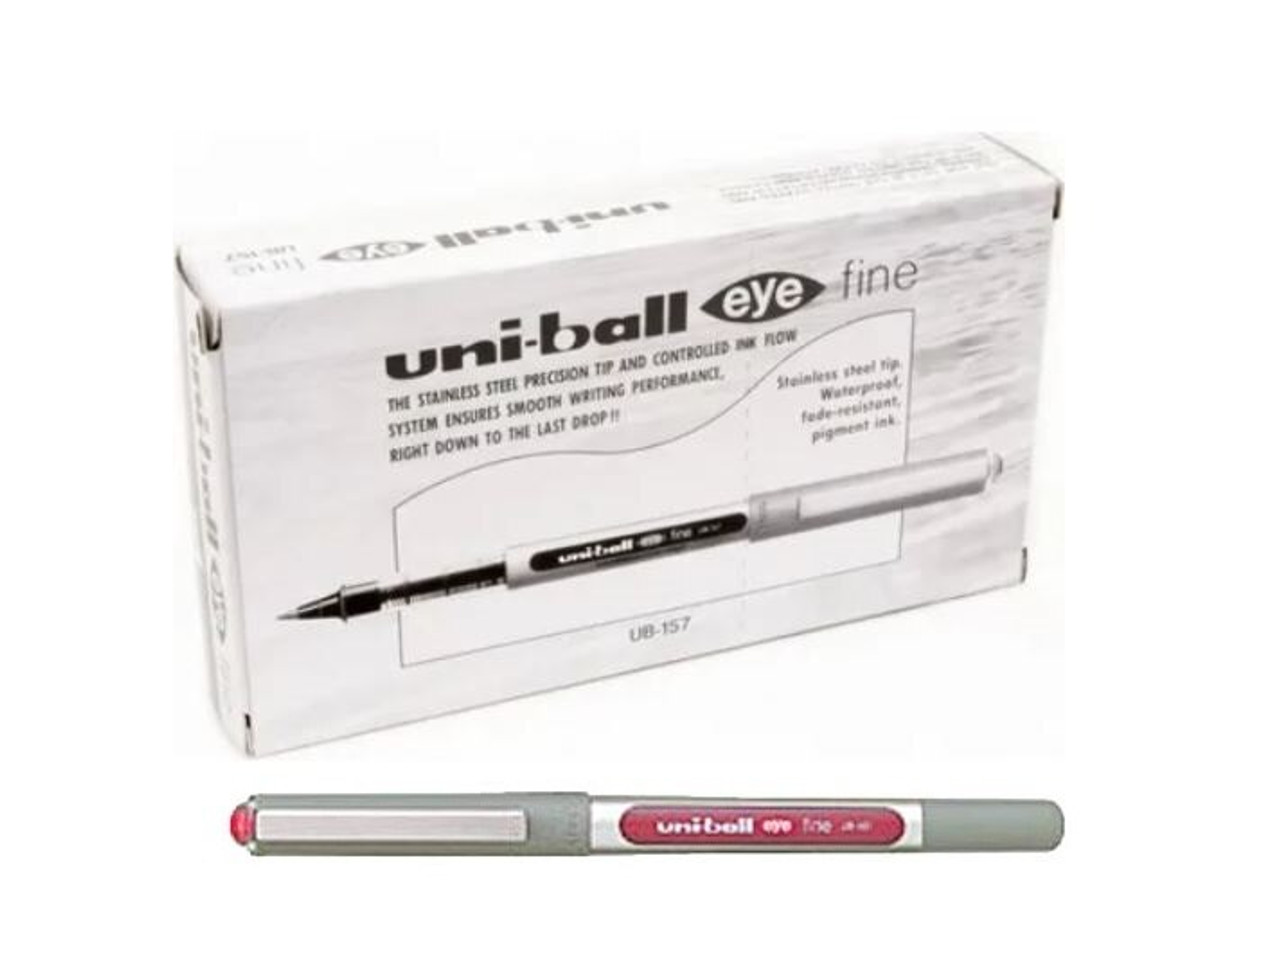 BLACK UNI BALL UB-157 EYE FINE ROLLERBALL PEN 0.7mm UNI-BALL AWARD WINNING